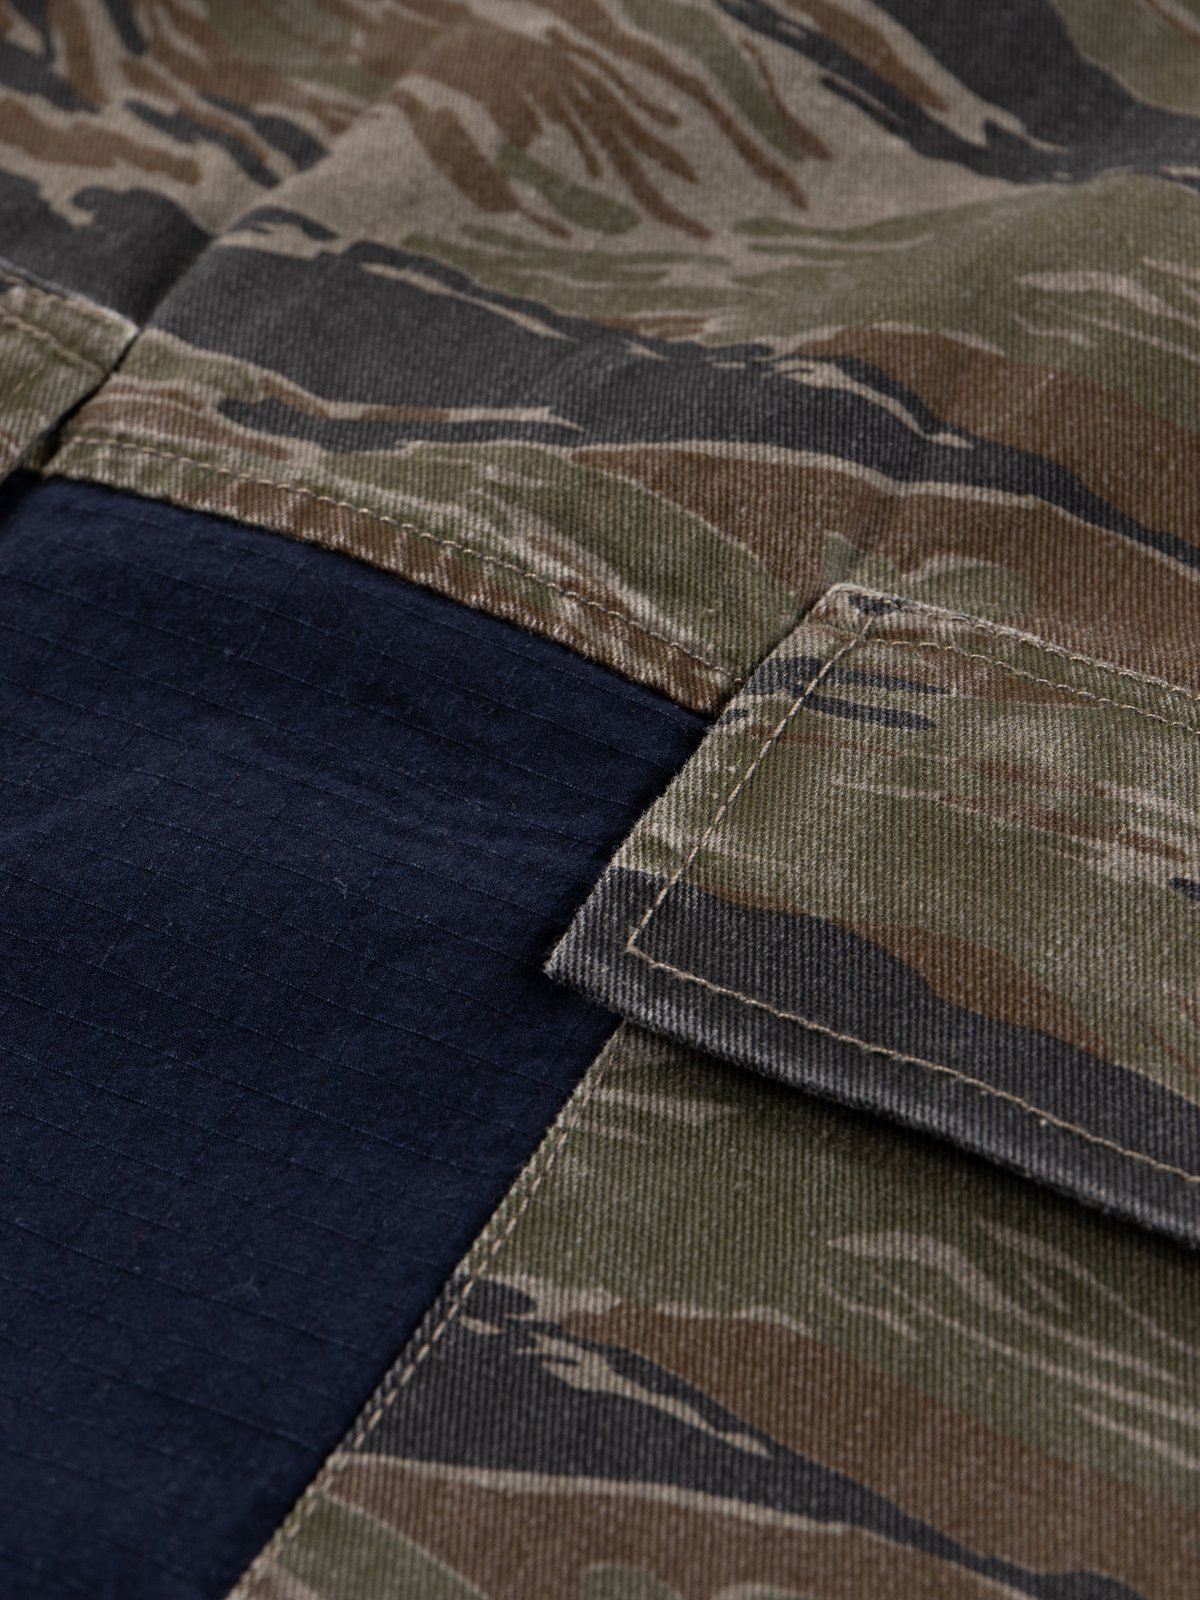 Reworks Camo/Navy Field Jacket - Image 8